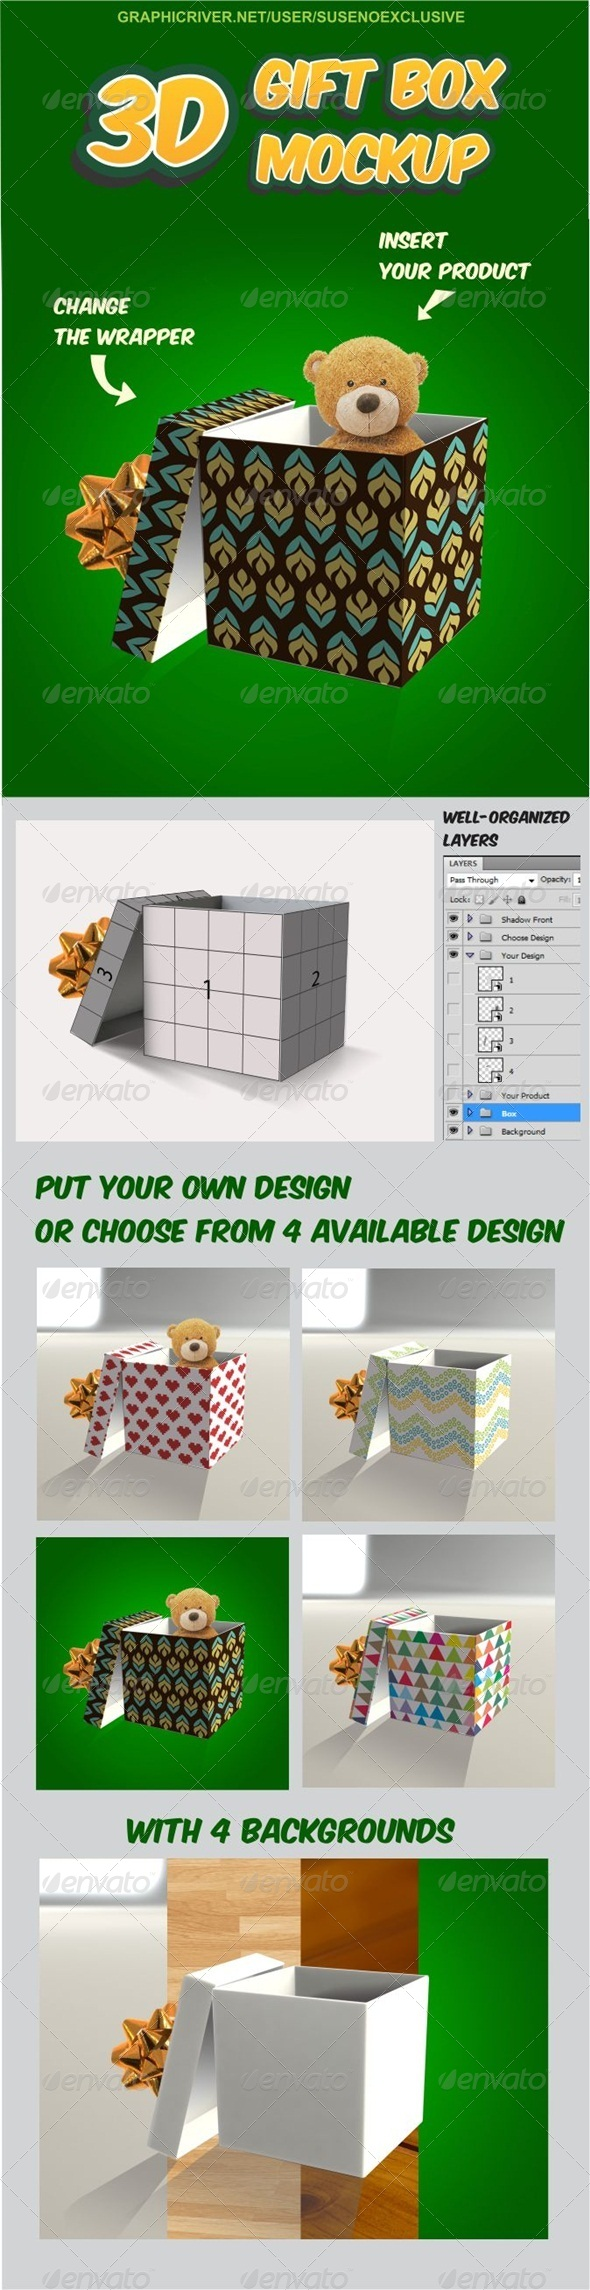 GraphicRiver 3D Gift Box Mockup 8726307